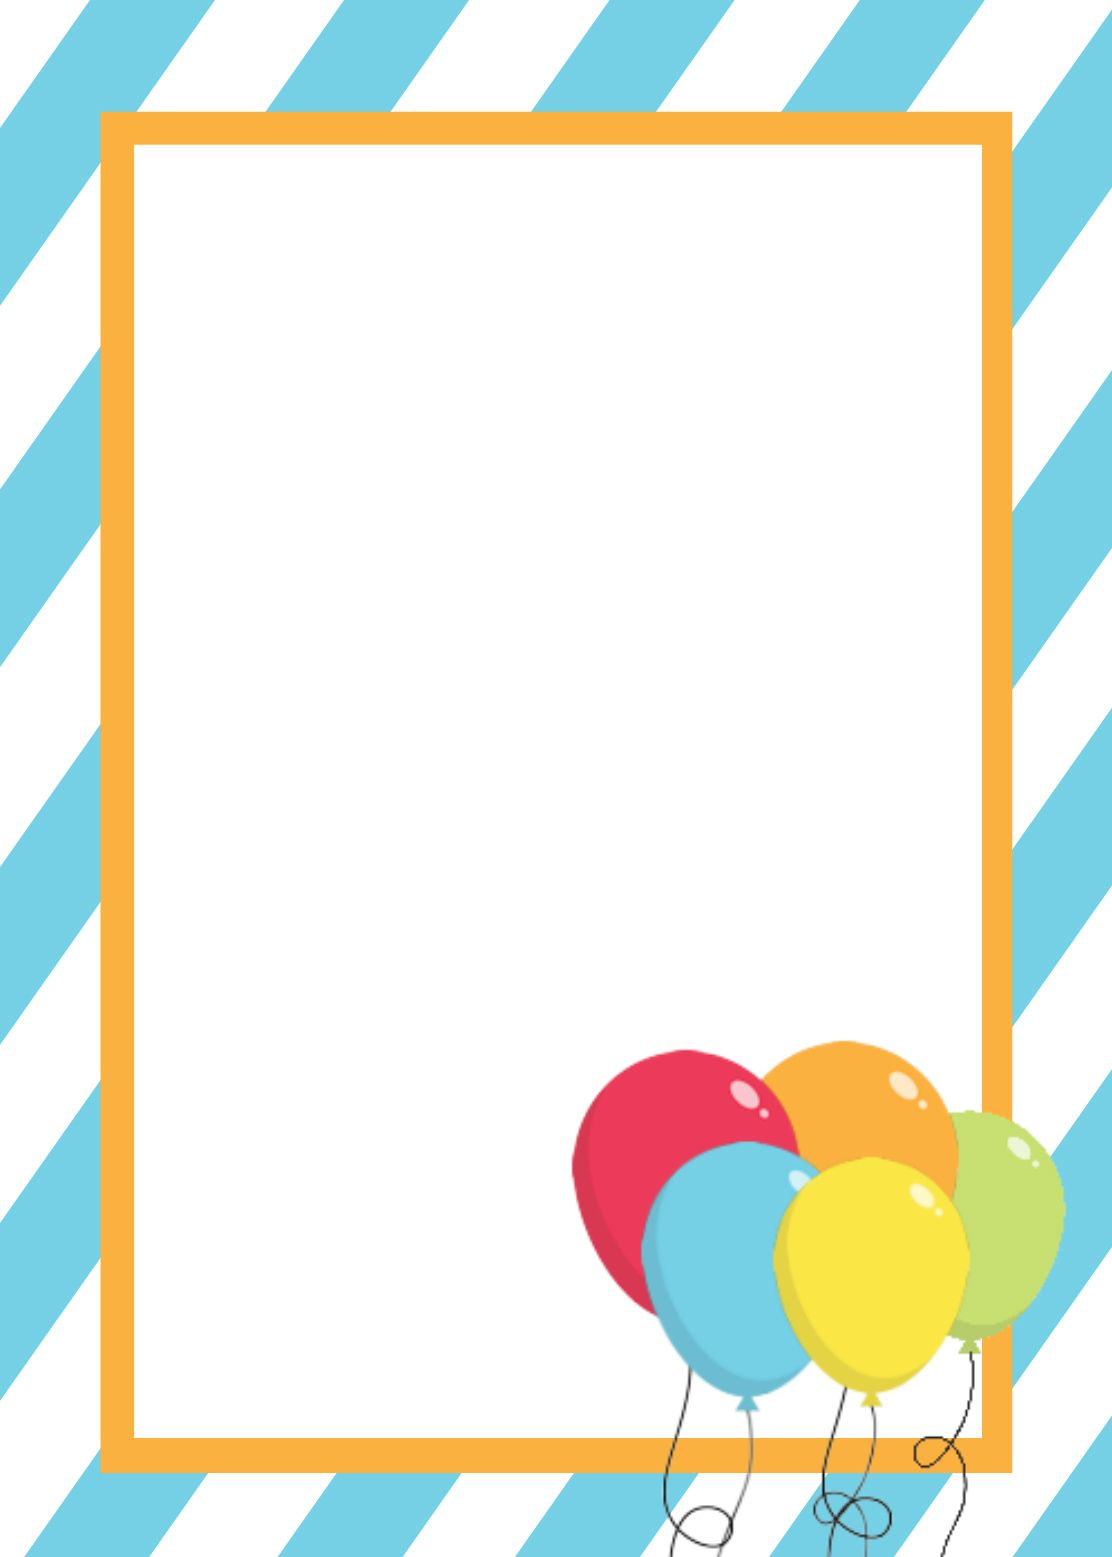 Birthday Card Template 16 Free Printable Word Pdf Formats Birthday Card Template Free Birthday Card Printable Free Birthday Card